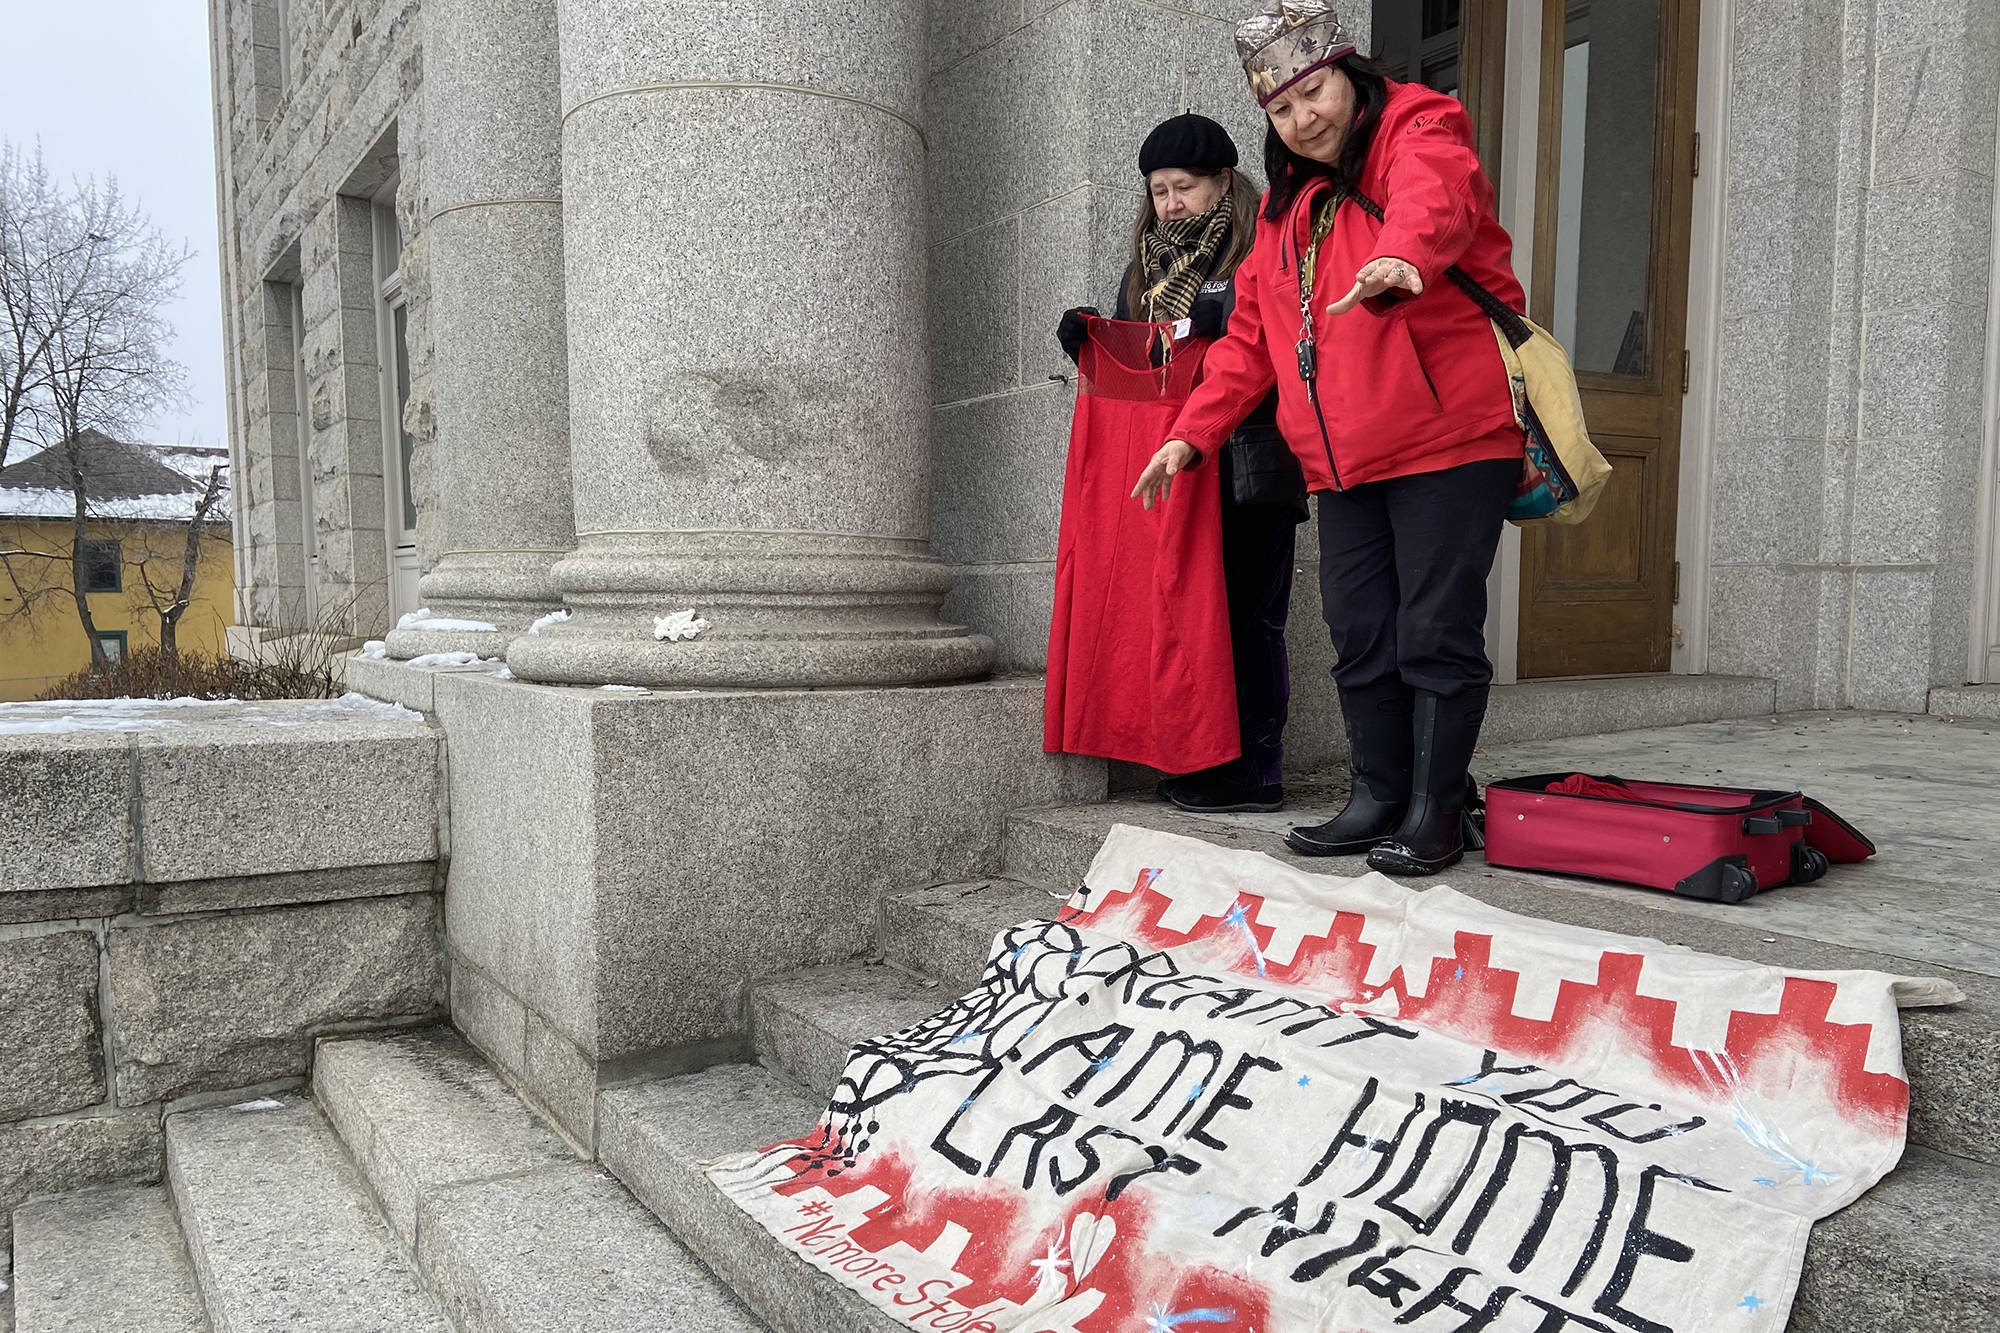 Protesters organize signs on the steps of the Vernon courthouse ahead of Curtis Sagmoen's trial on Feb. 10, 2020. (Jennifer Smith - Vernon Morning Star)